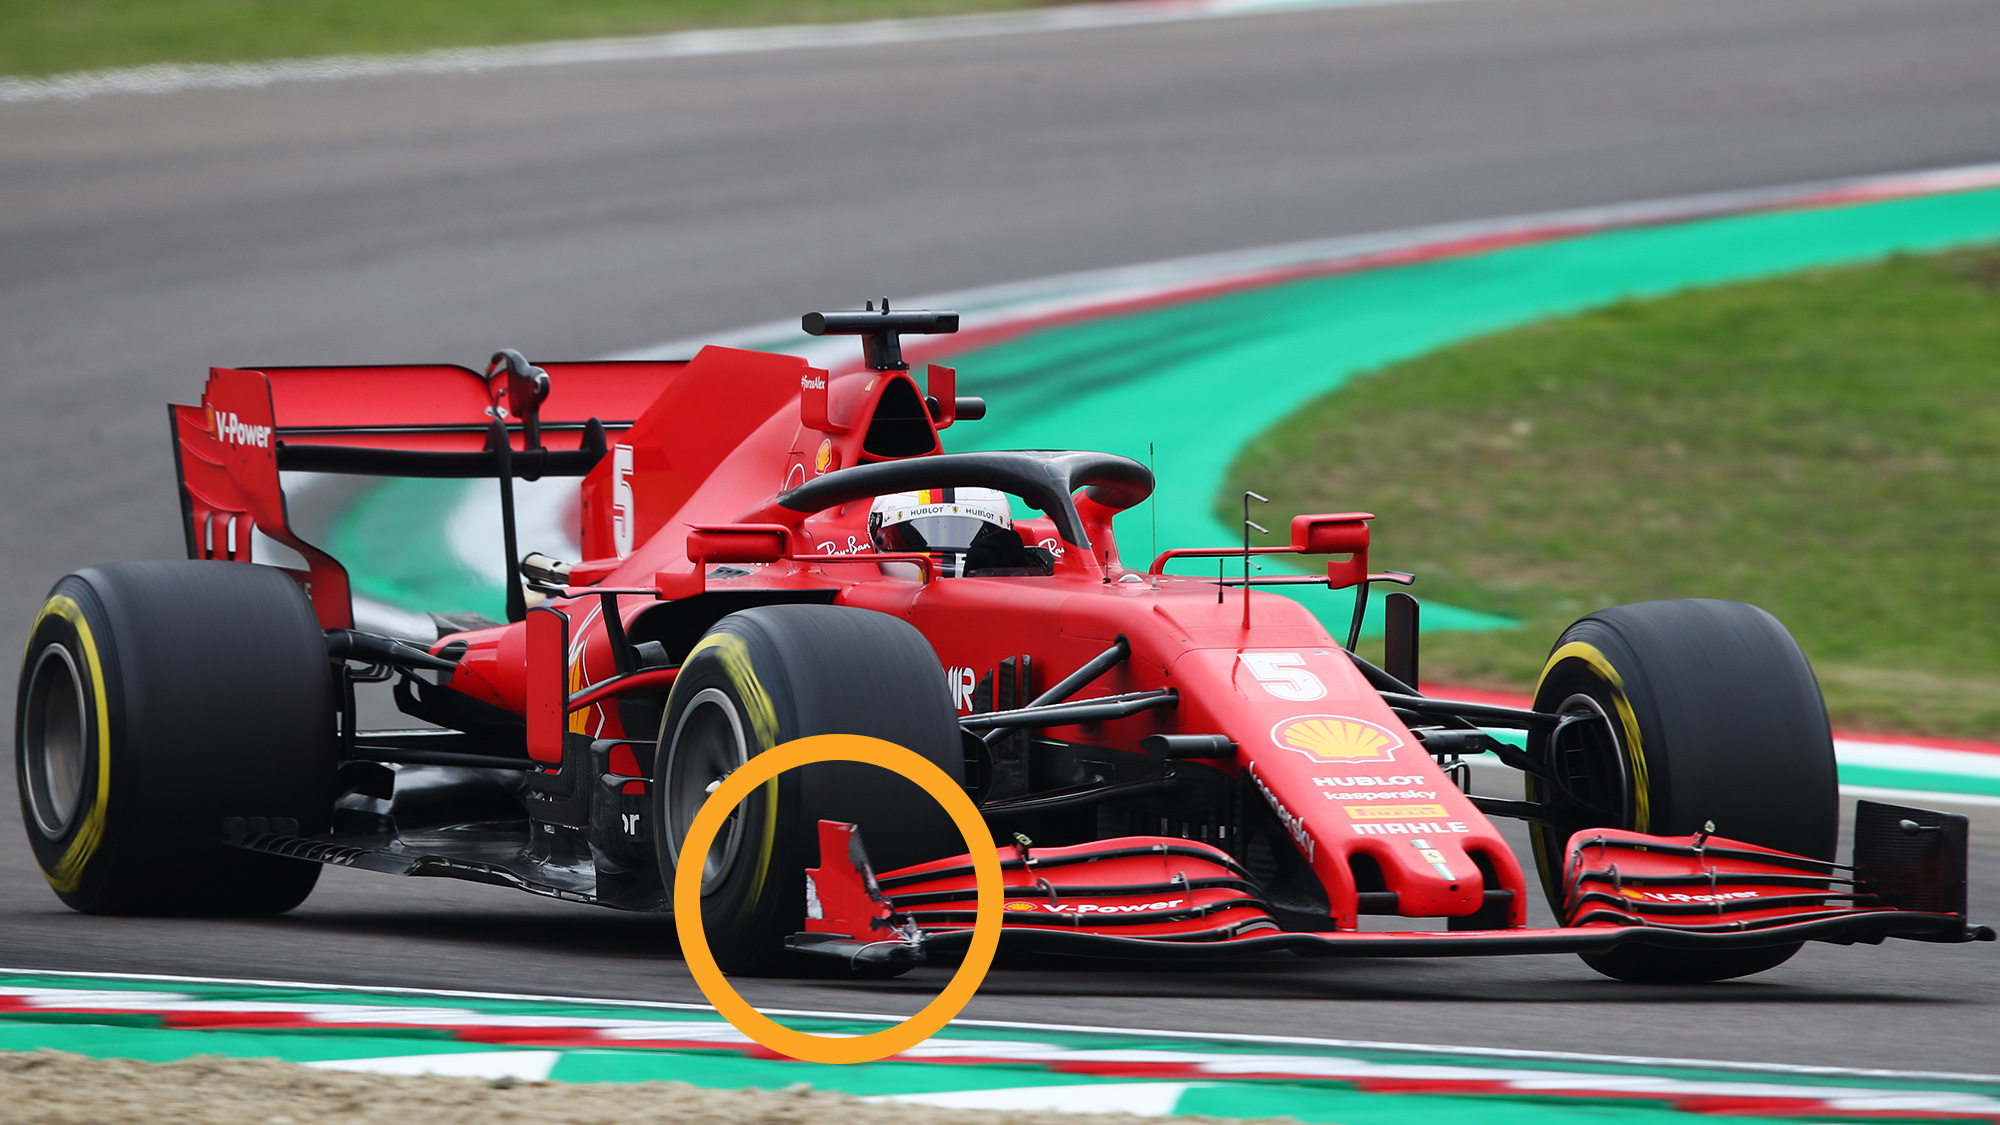 Sebastian Vettel's Ferrari with a damaged front wing endplate at Imola during the 2020 F1 Emilia Romagna Grand Prix